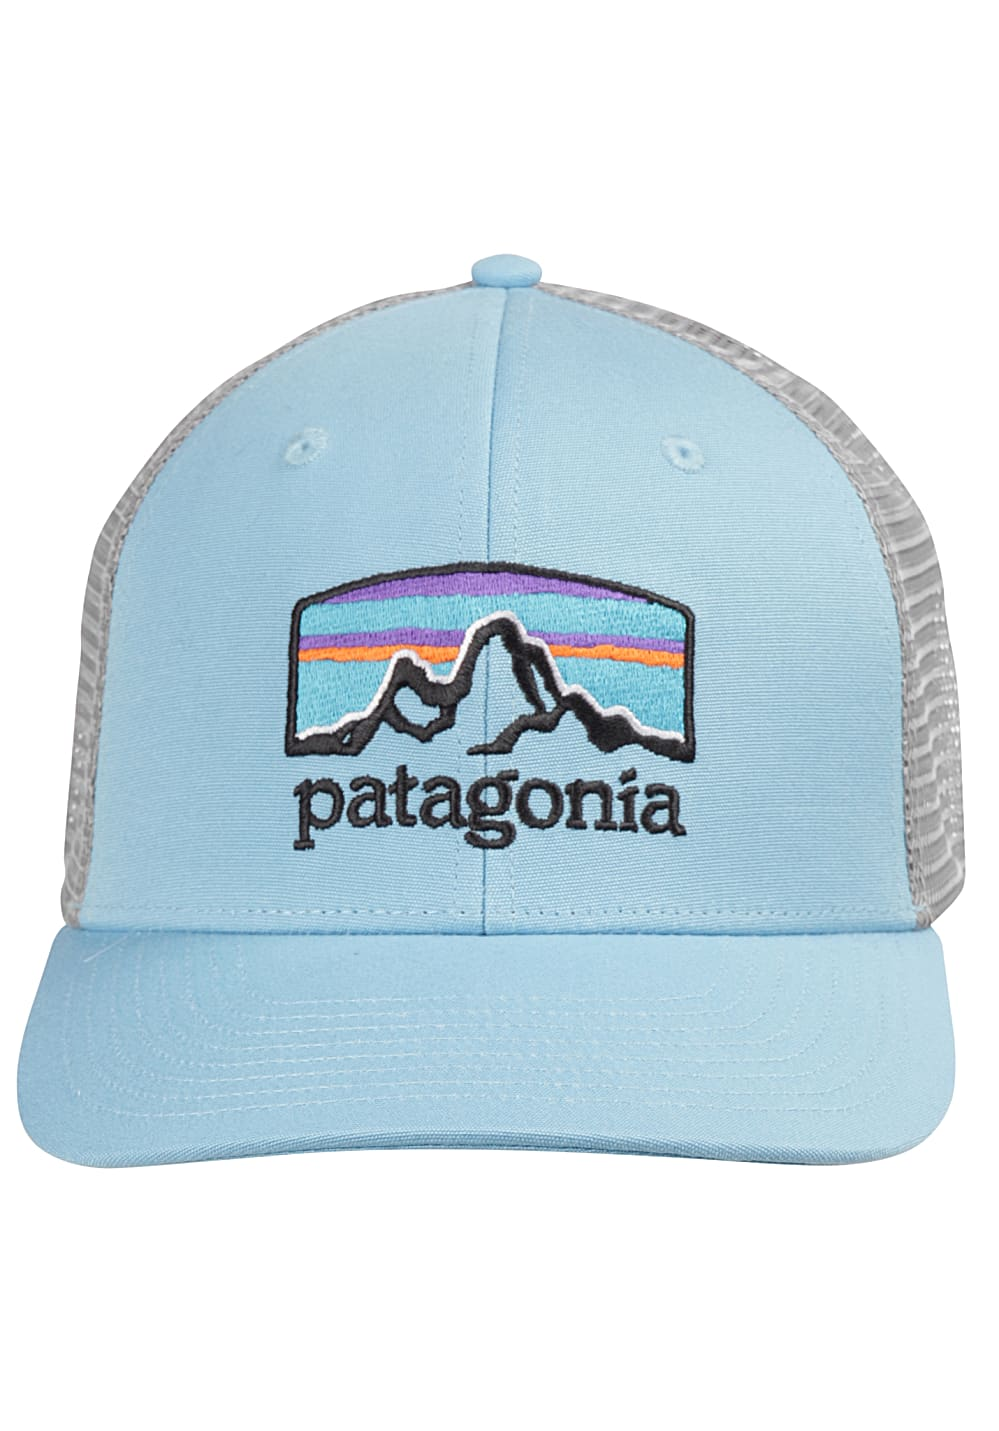 a41770c82038 PATAGONIA Fitz Roy Horizons - Casquette trucker - Bleu - Planet Sports